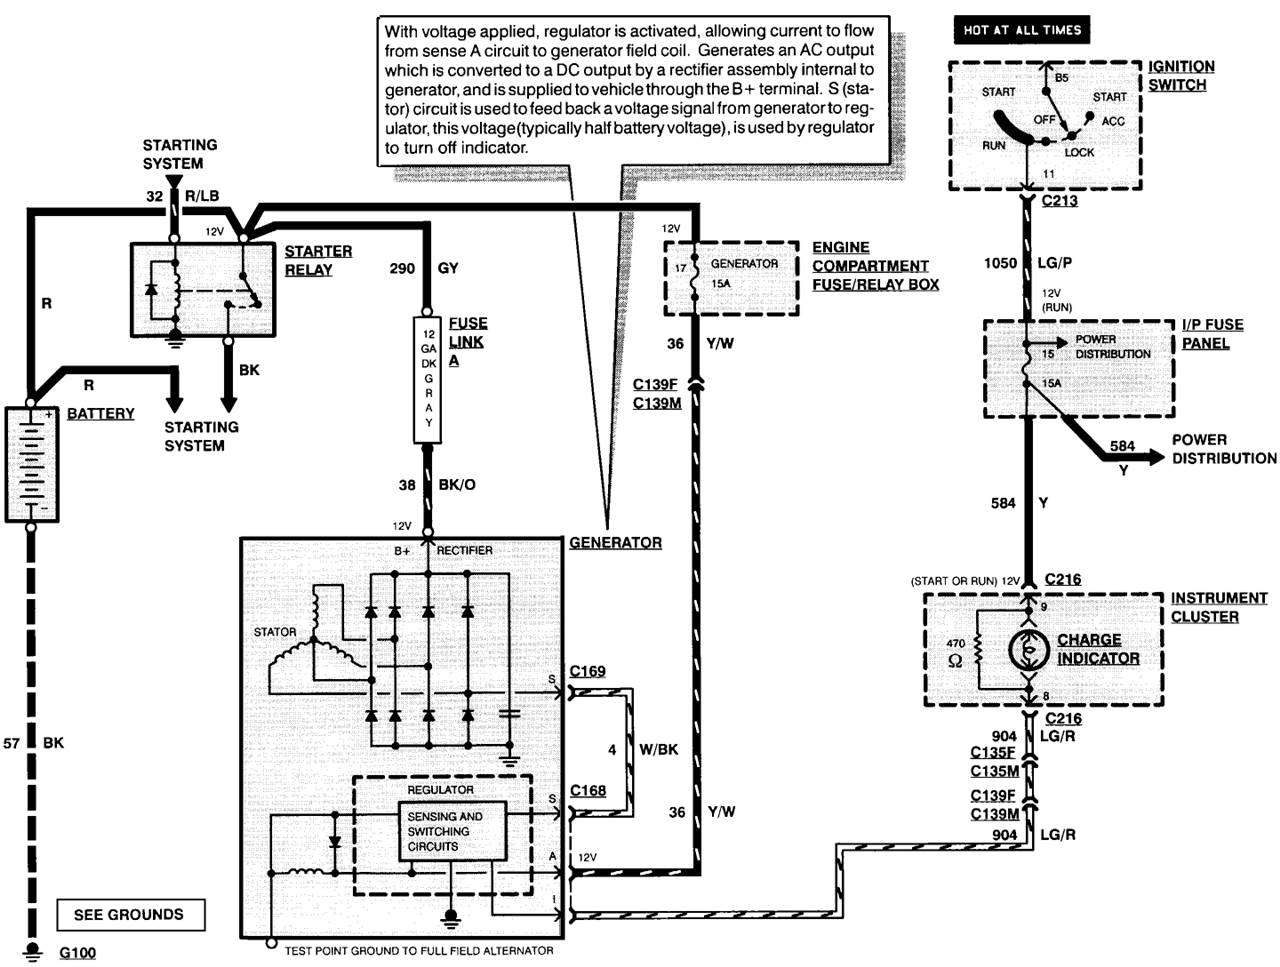 Valeo Alternator Regulator Wiring Diagram